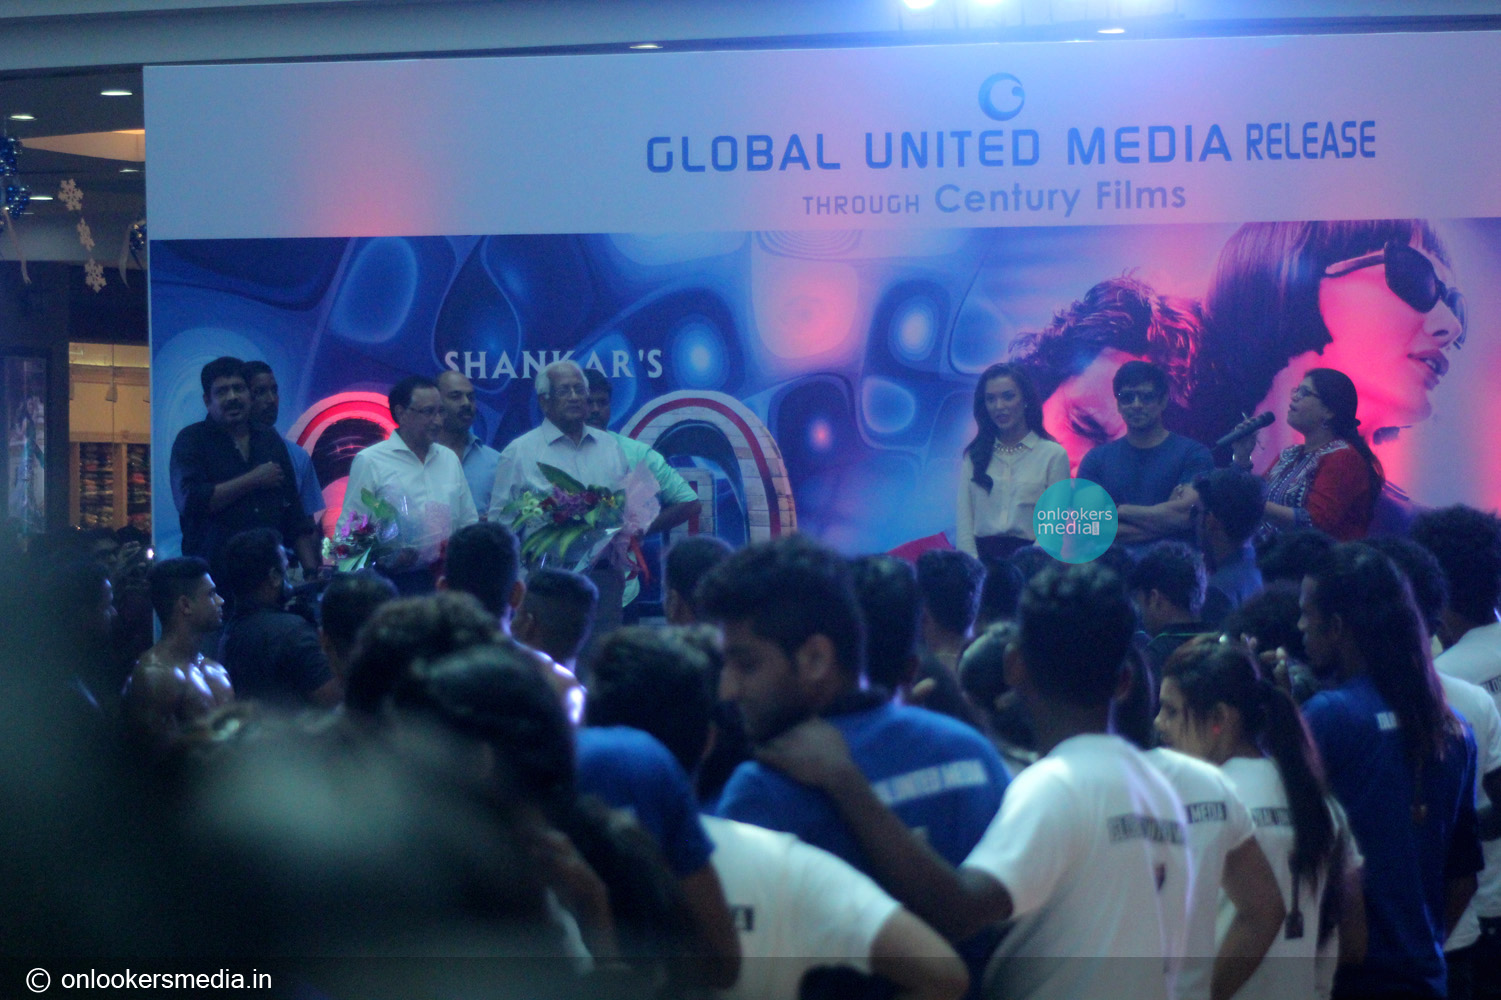 http://onlookersmedia.in/wp-content/uploads/2015/01/Vikram-at-Lulu-mall-for-I-promotional-event-Amy-Jackson-Onlookers-Media-18.jpg